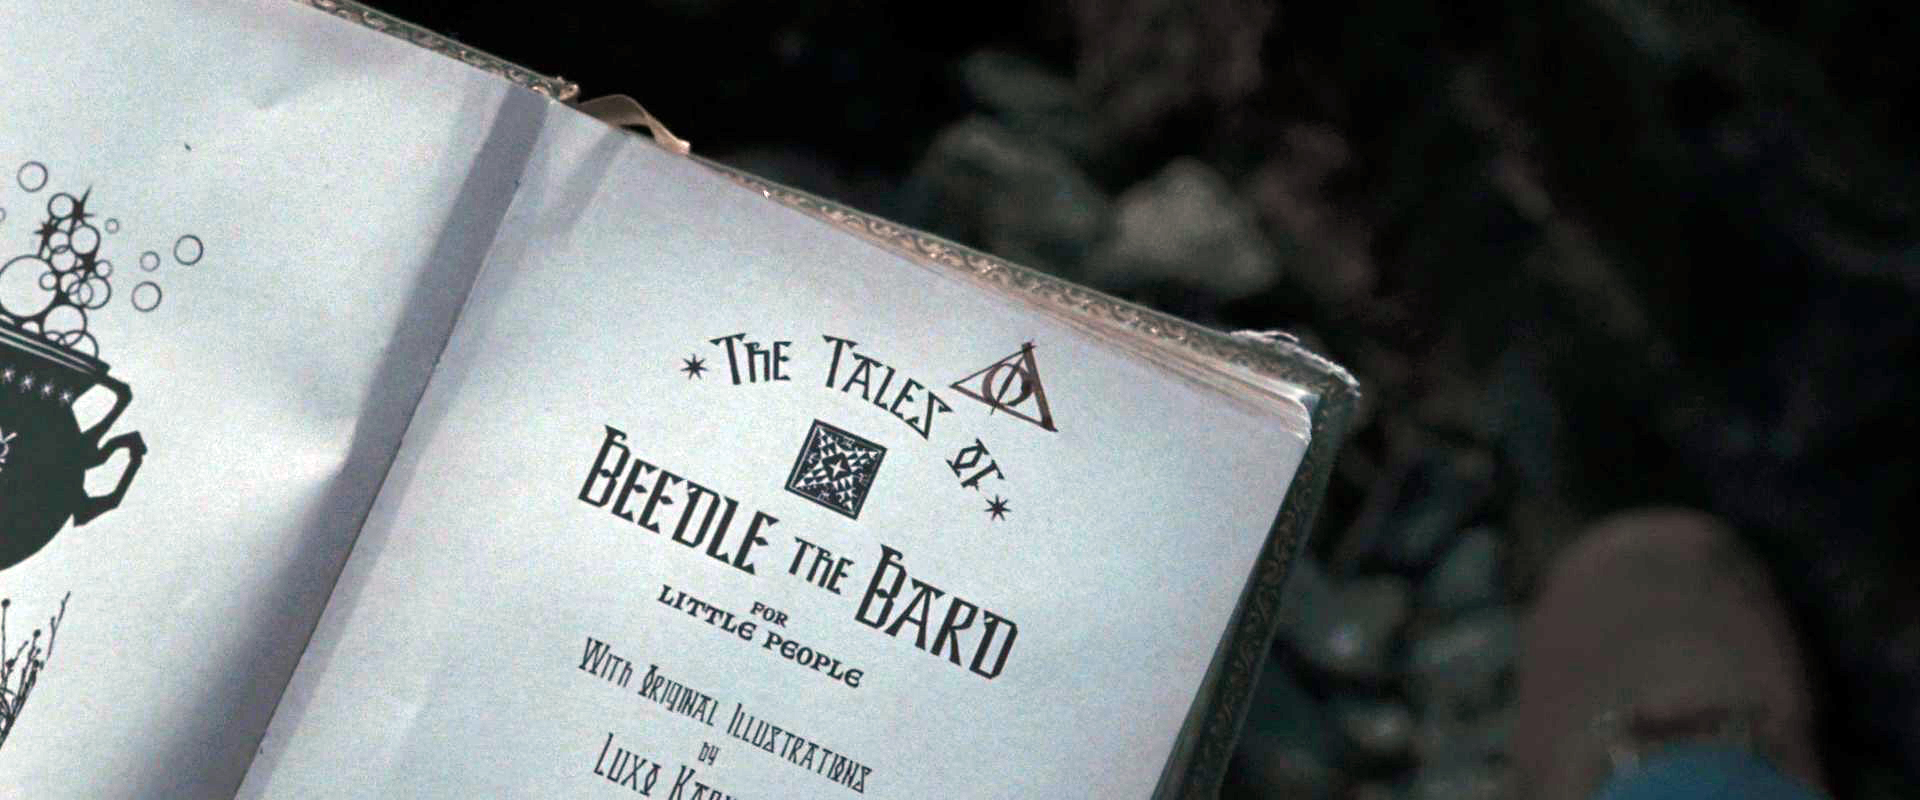 Image dh1 the tales of beedle the bard 1st page deathly hallows dh1 the tales of beedle the bard 1st page deathly hallows symbolg biocorpaavc Images